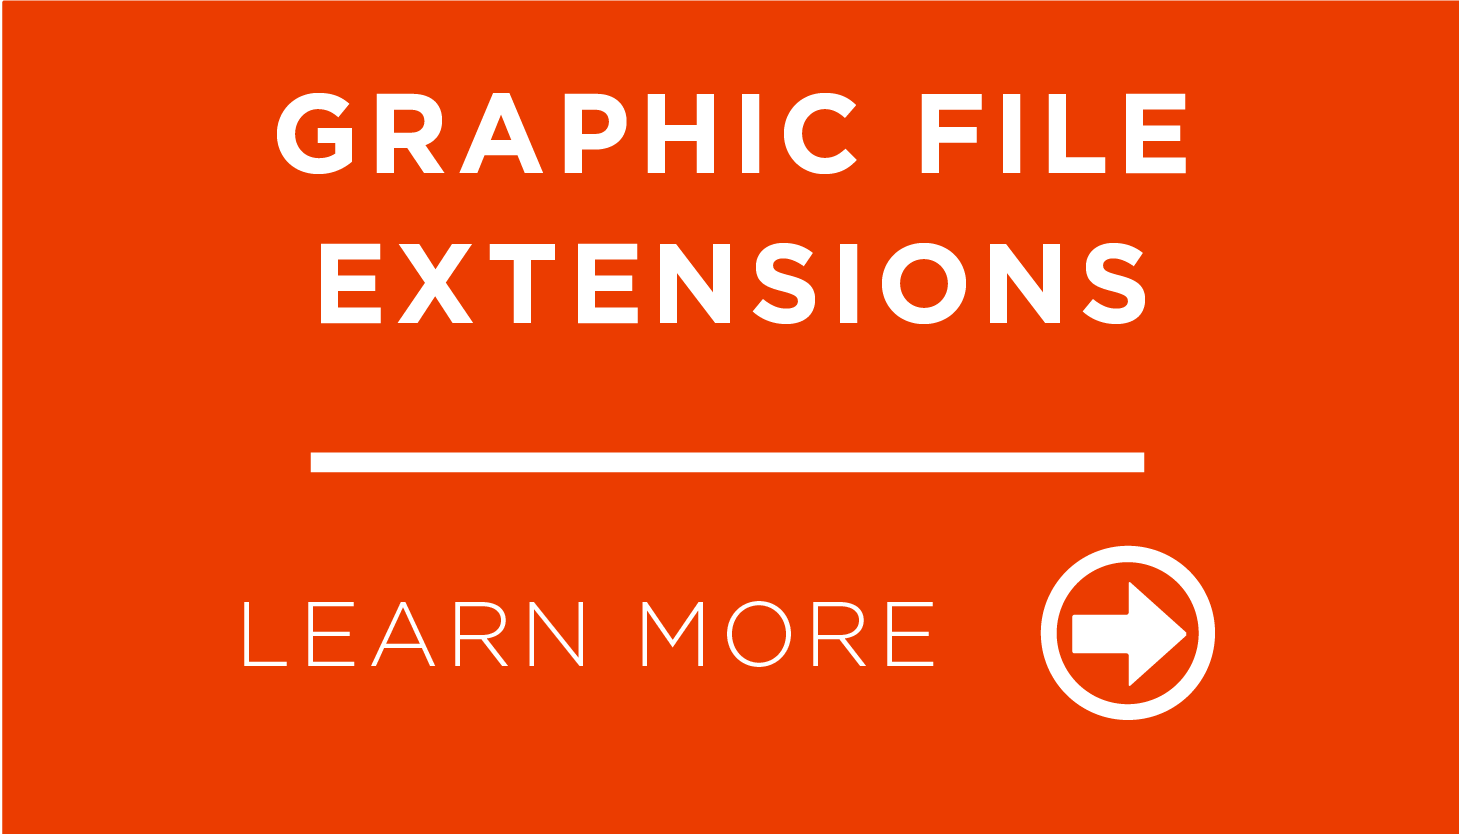 Graphic File Extensions